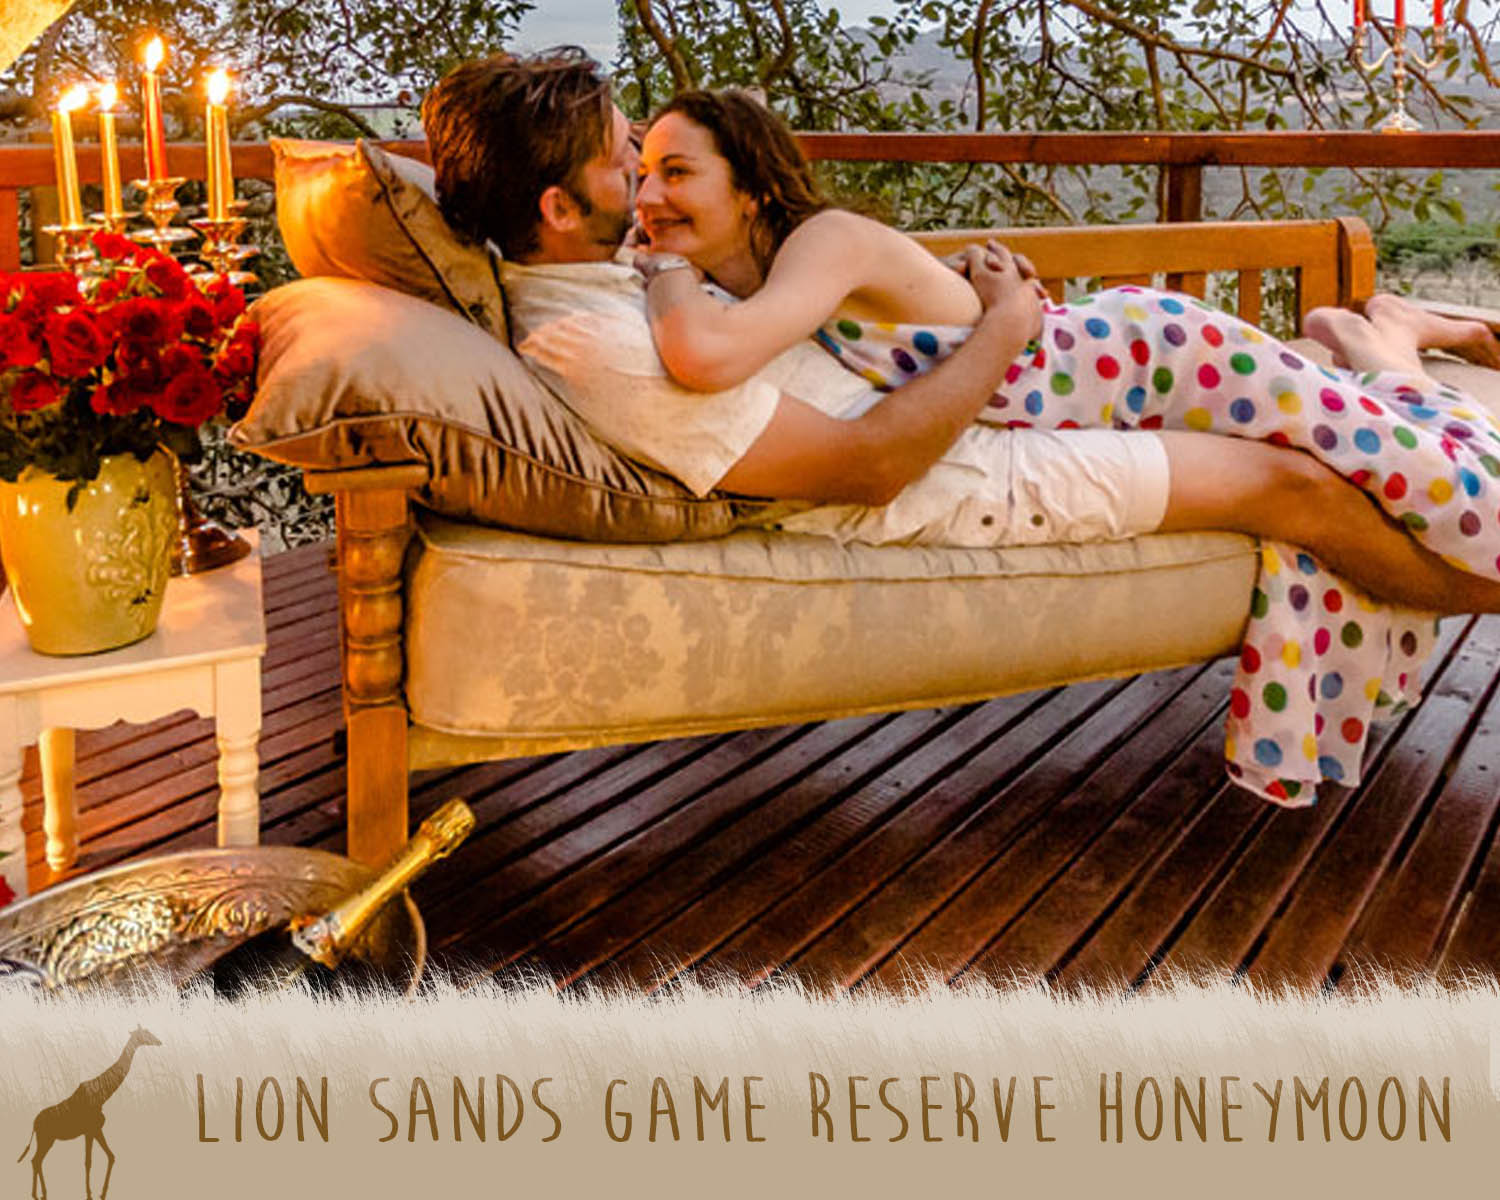 Lion Sands Game Reserve Honeymoon Featured Image